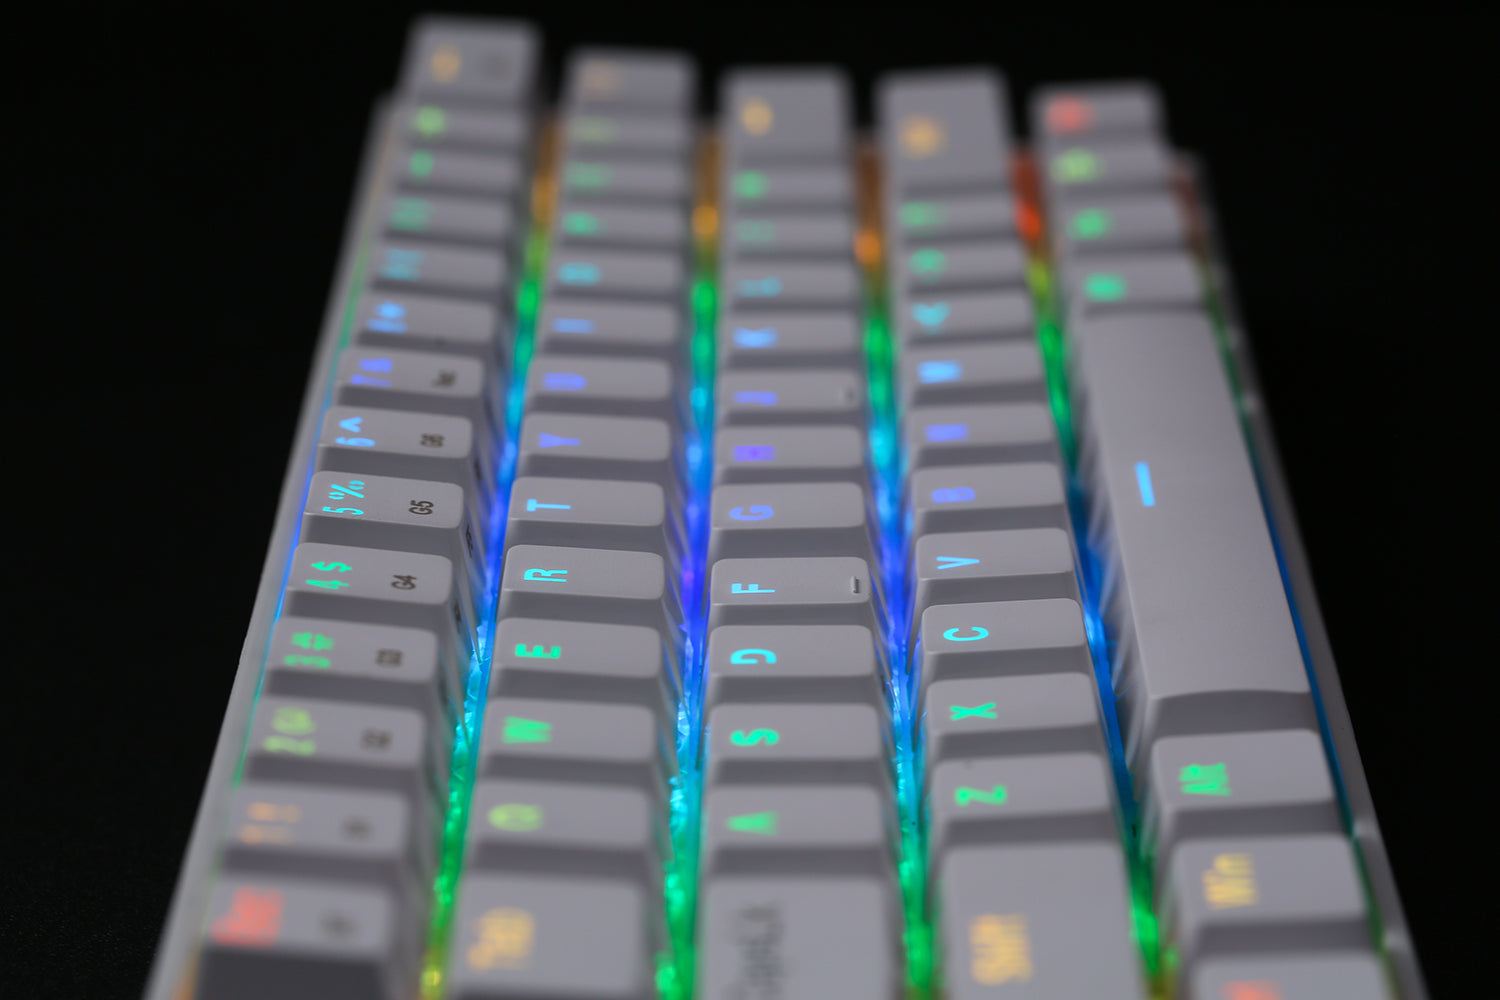 60 percent keyboard